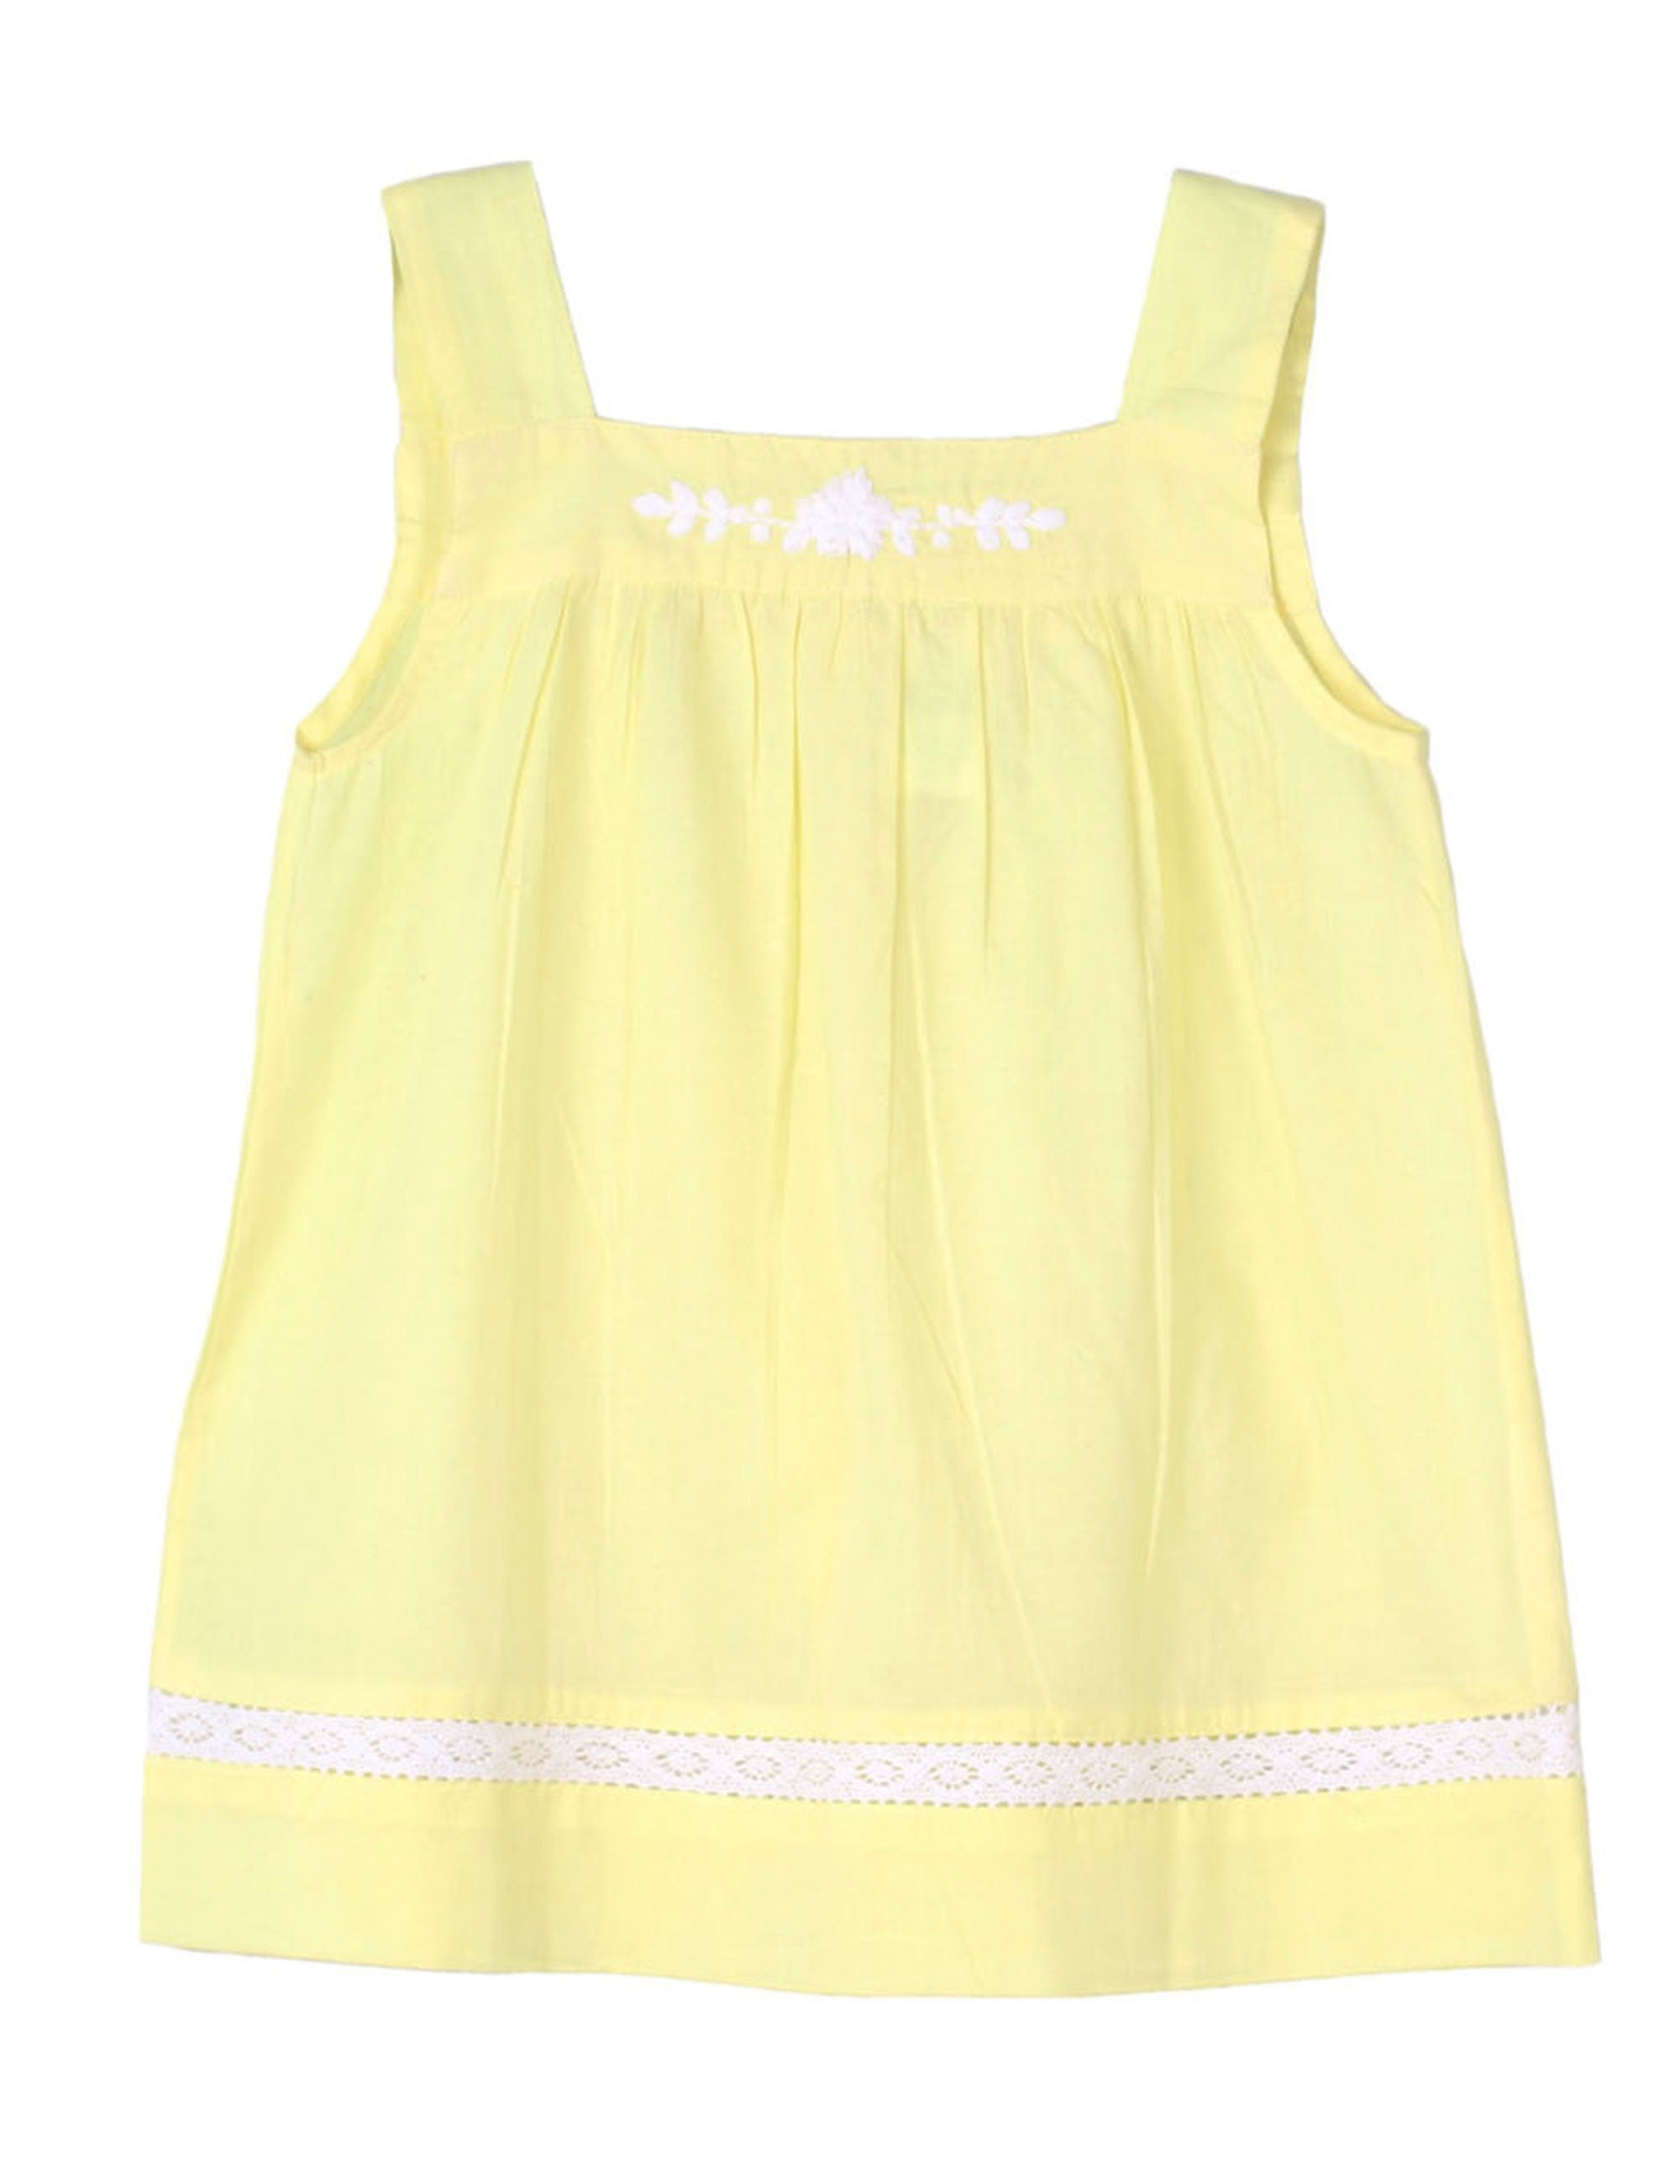 Embroidered Solid Top with Lace in Yellow for Girls